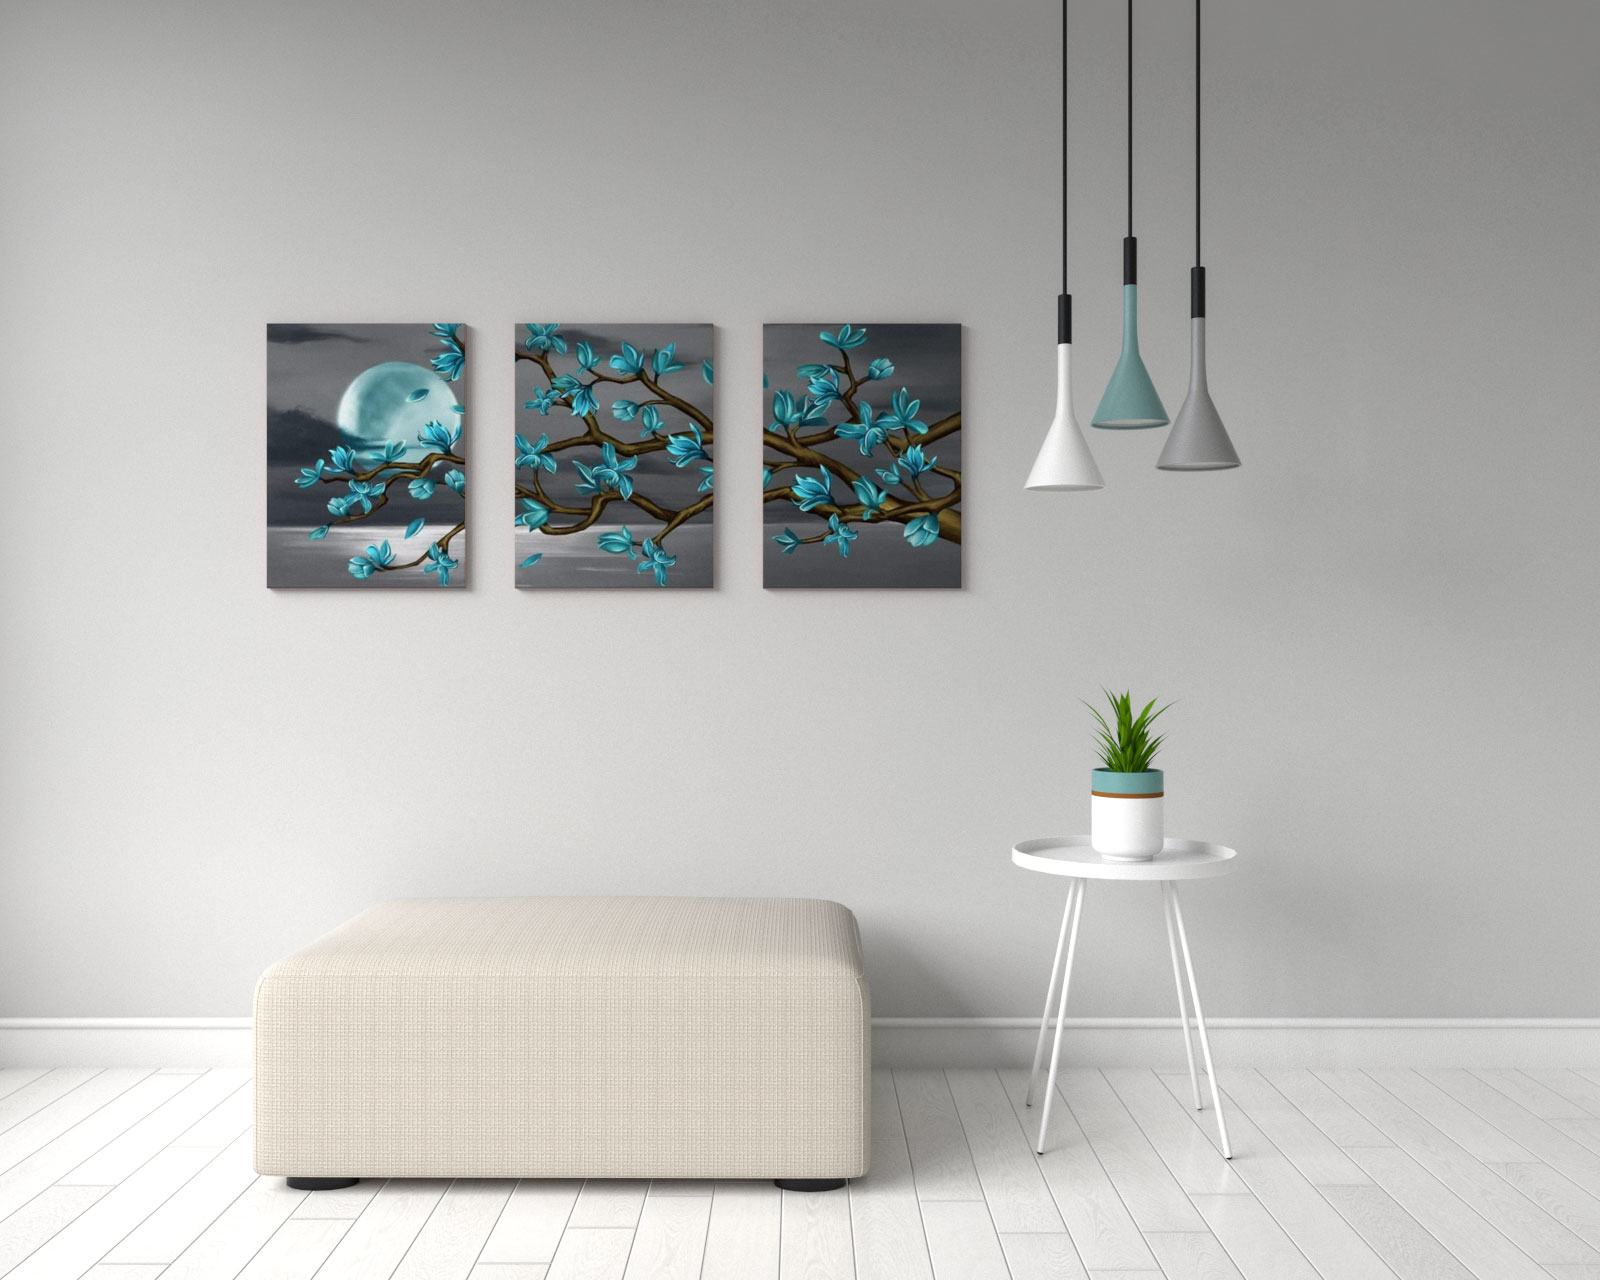 Black and teal magnolia moon seascape scenery wall art